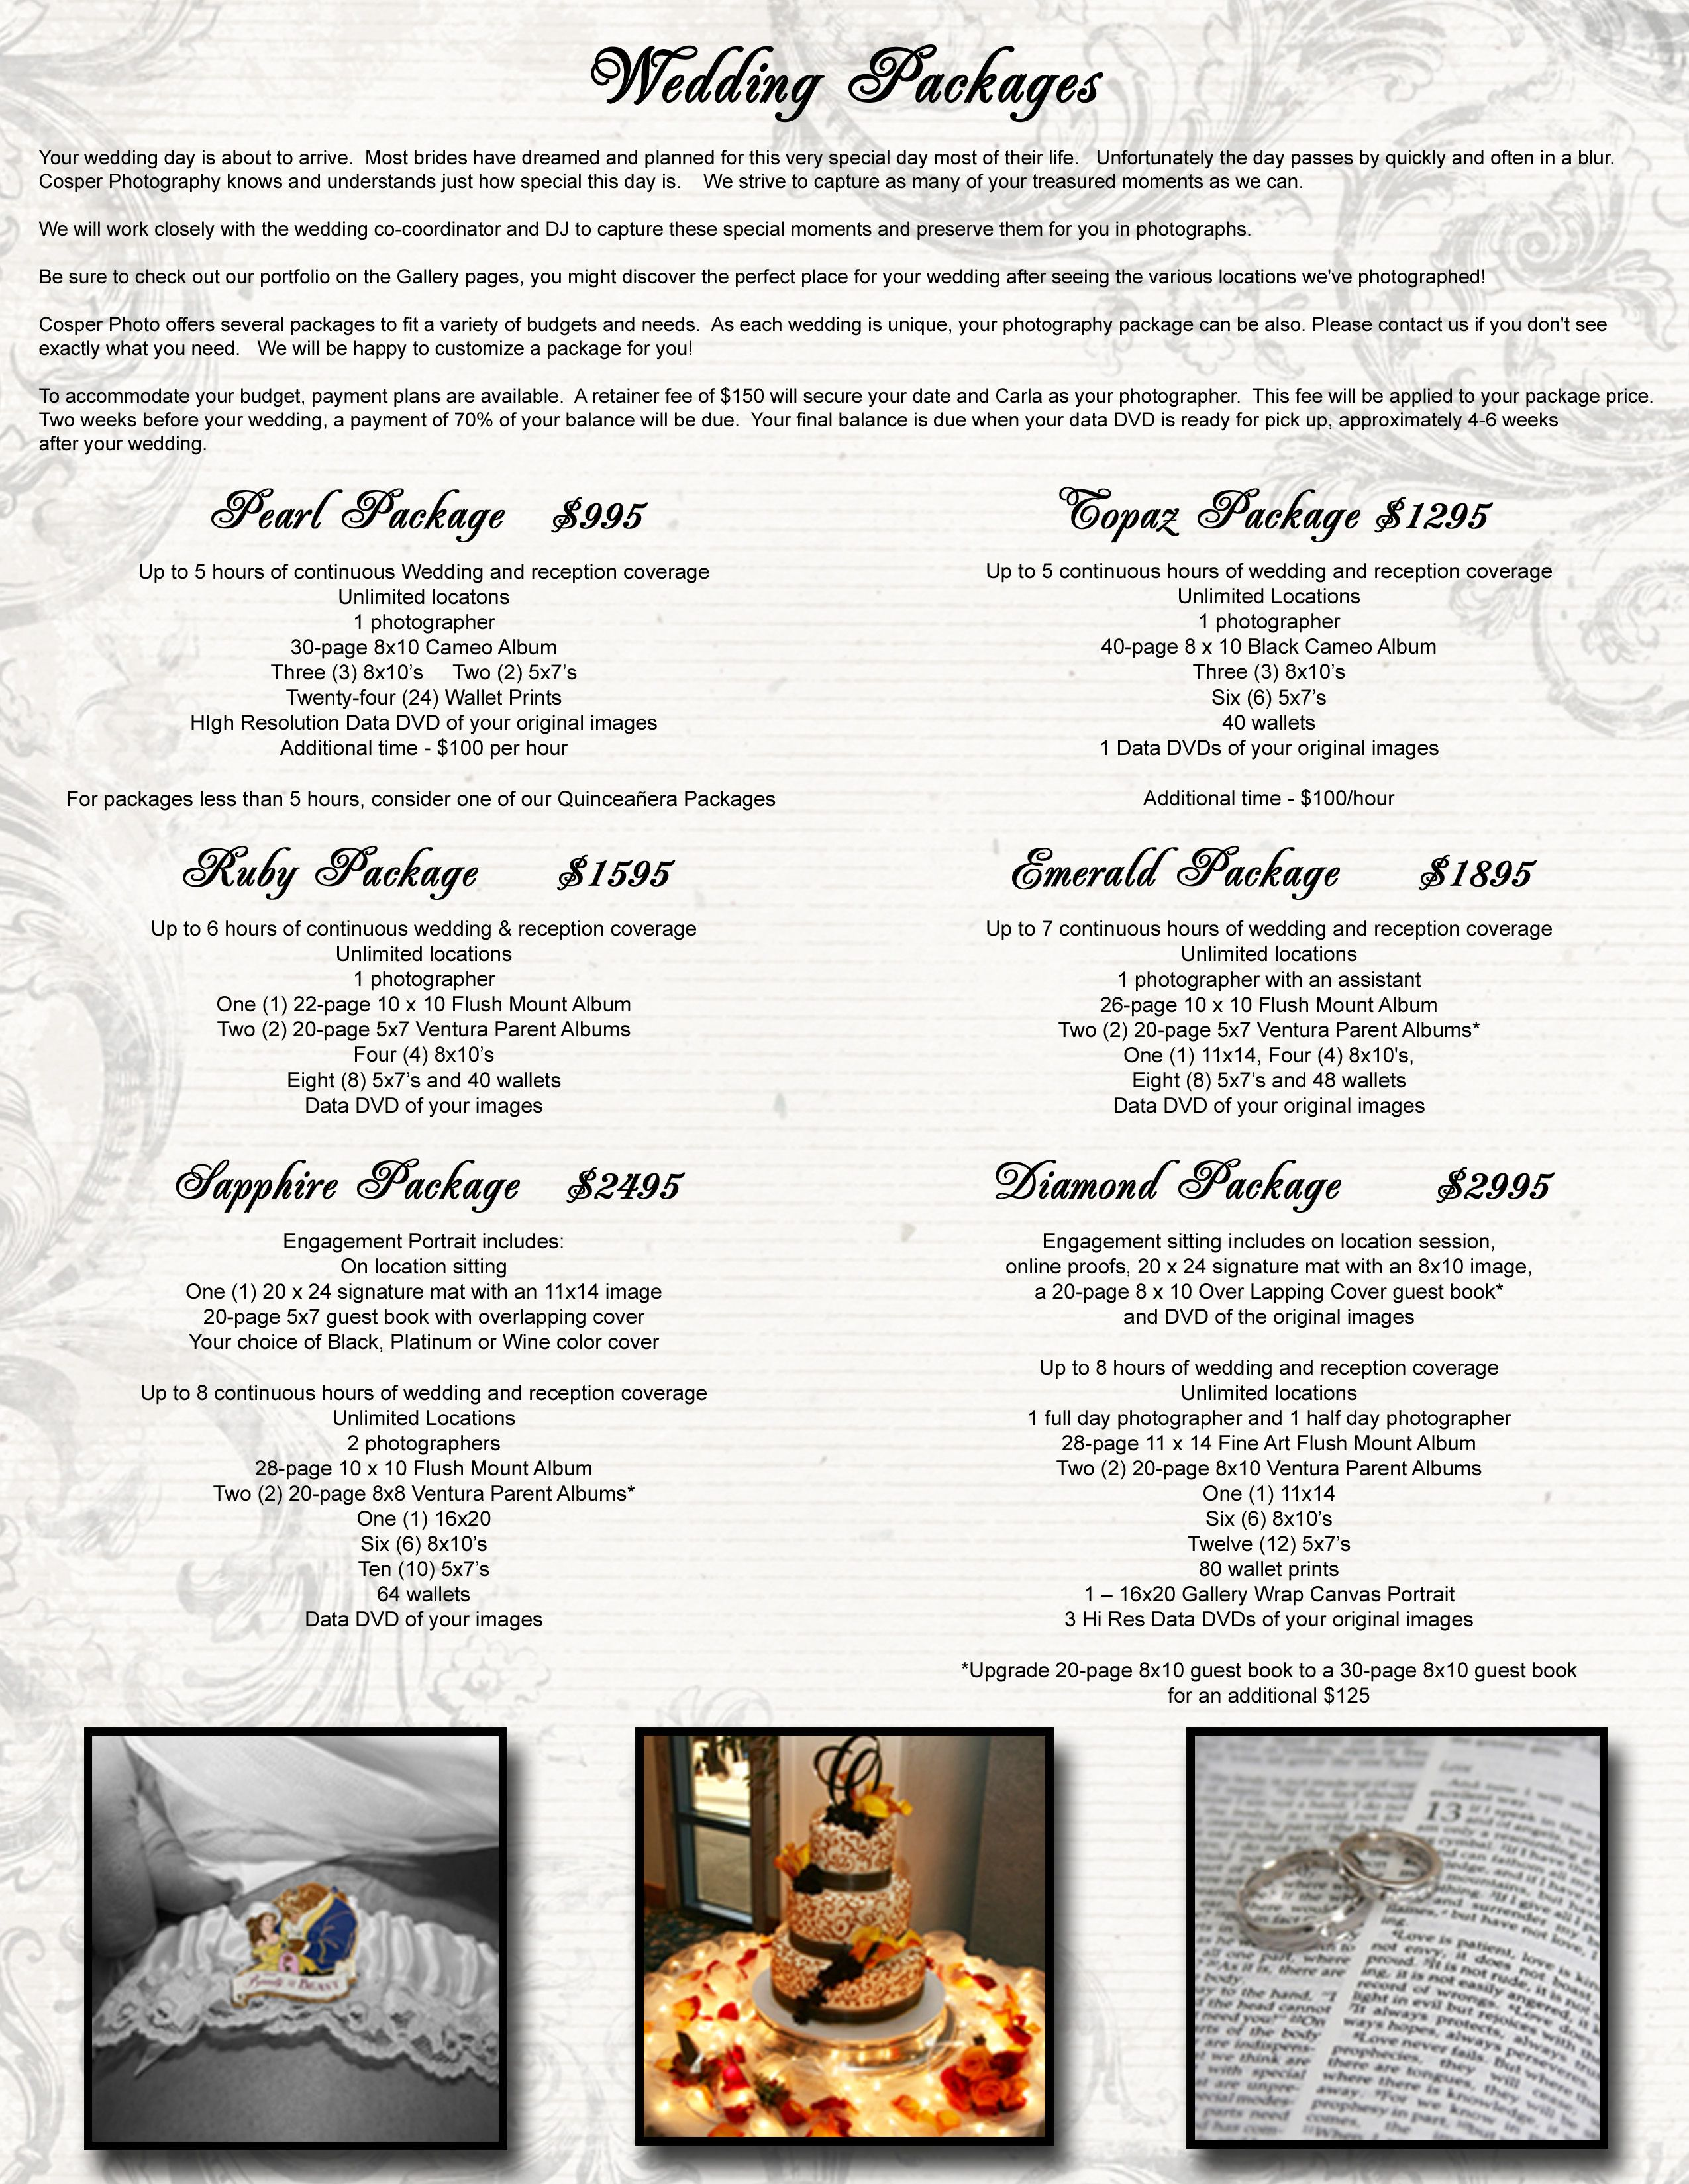 Details and Pricing of Wedding Packages Offered by Cosper